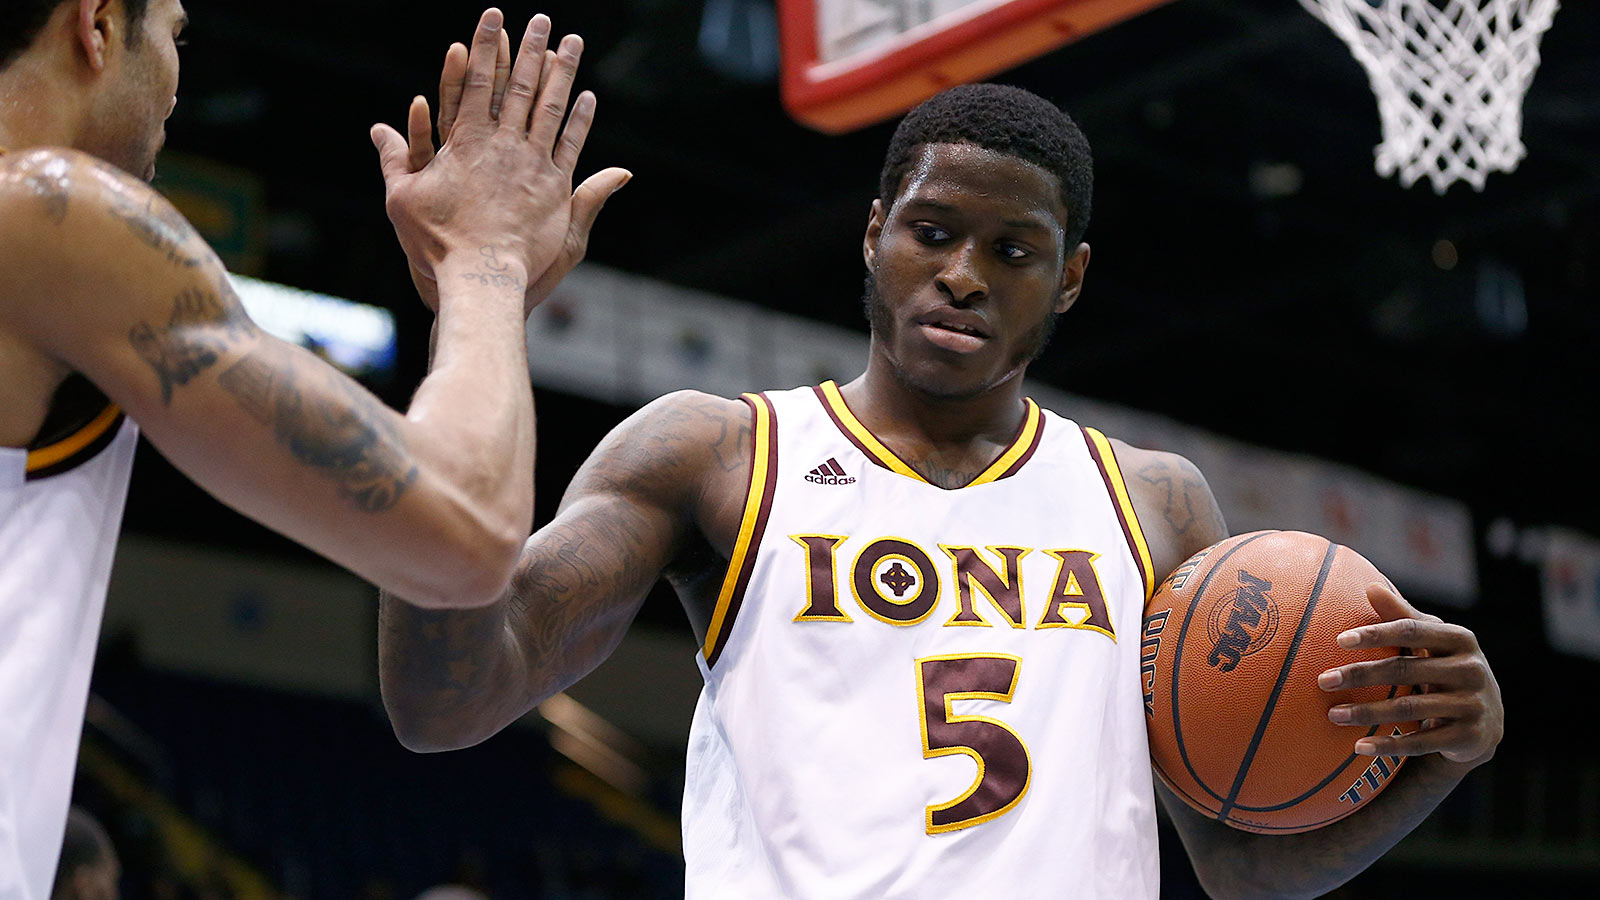 Iona's English scores career-high 46 points, hits 13 treys in win